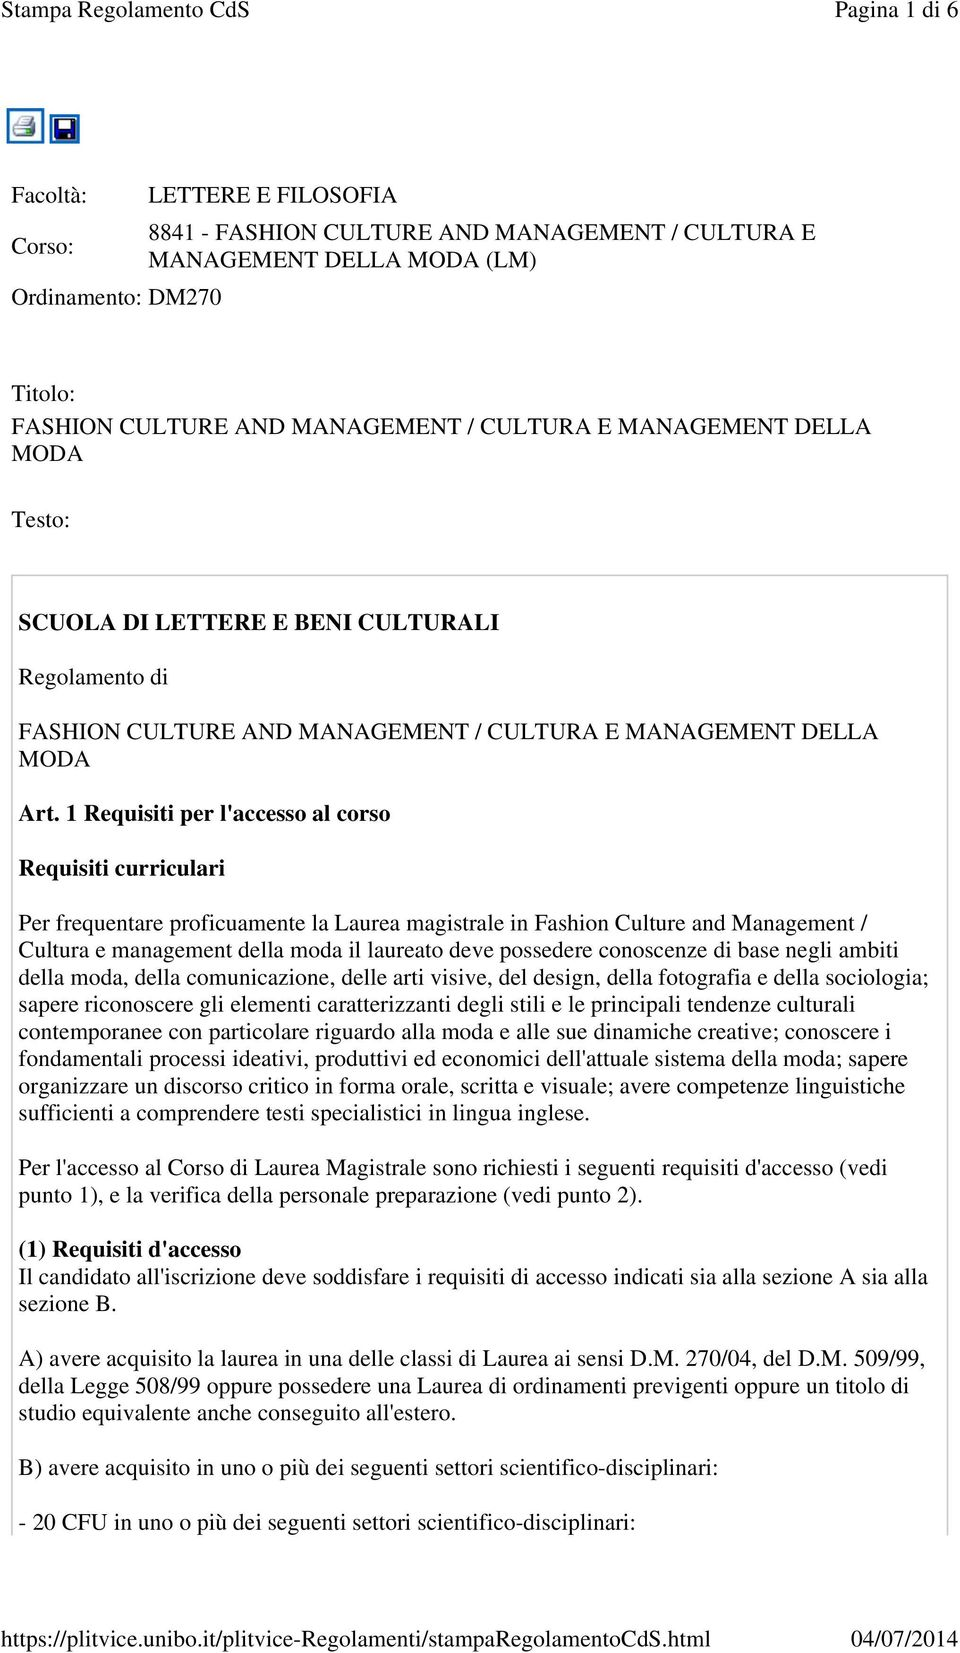 1 Requisiti per l'accesso al corso Requisiti curriculari Per frequentare proficuamente la Laurea magistrale in Fashion Culture and Management / Cultura e management della moda il laureato deve